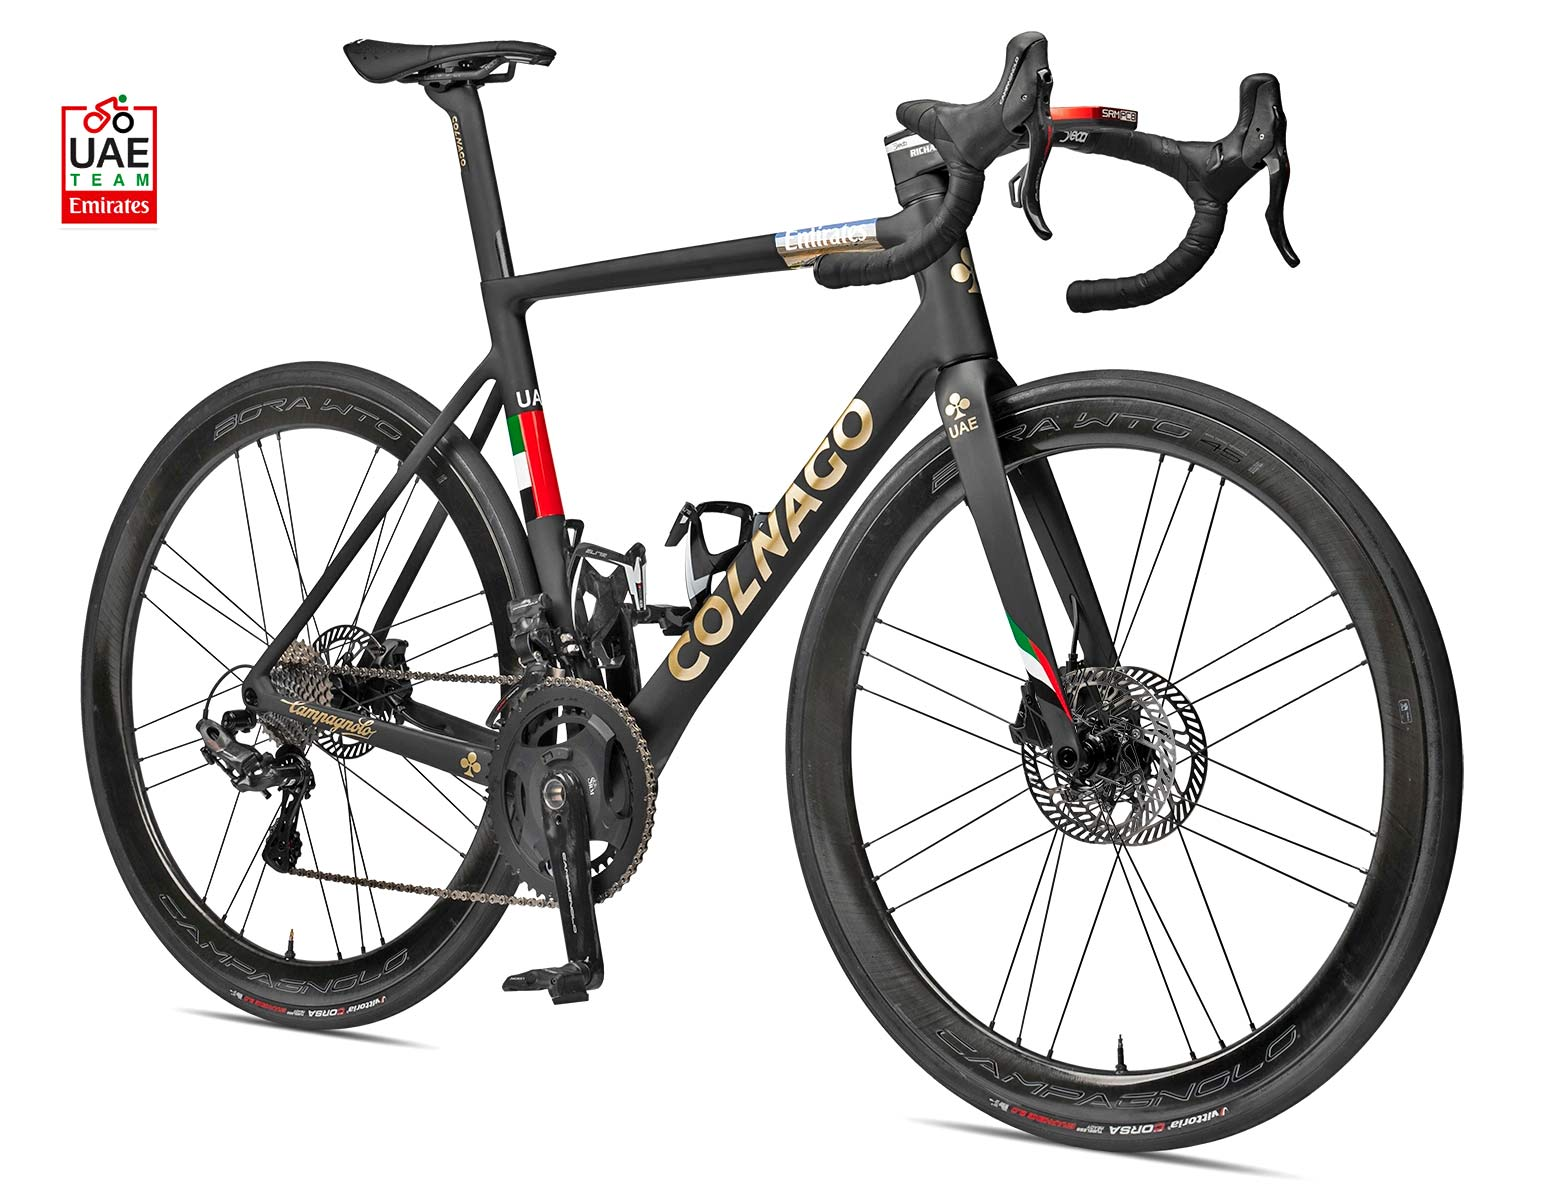 Campagnolo Smart Disc Technology, double disc brake-equipped Colnago V3RS DV road bike